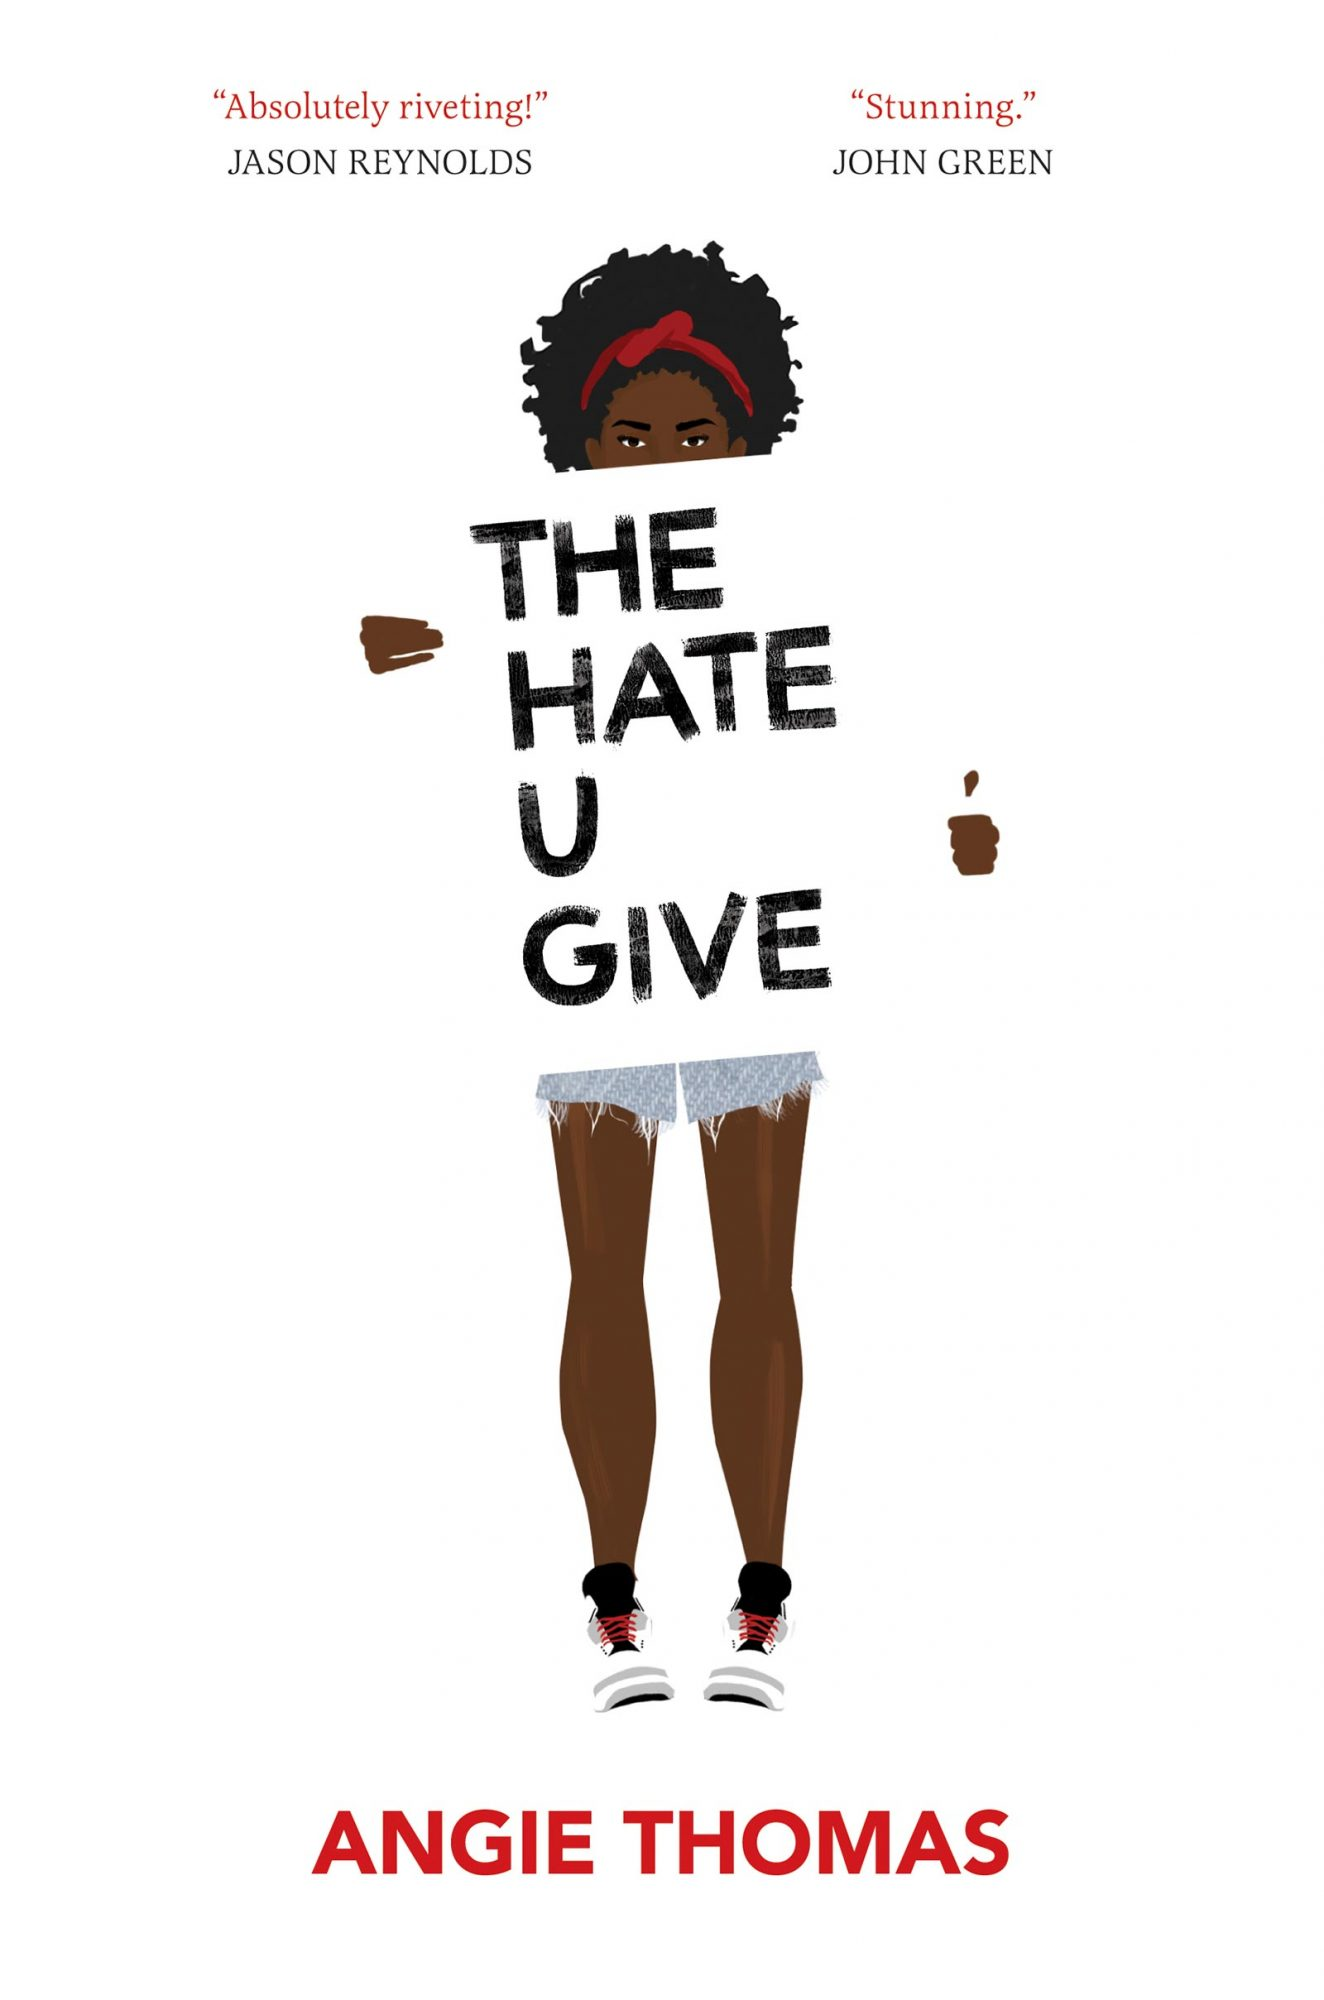 Angie Thomas, The Hate U Give